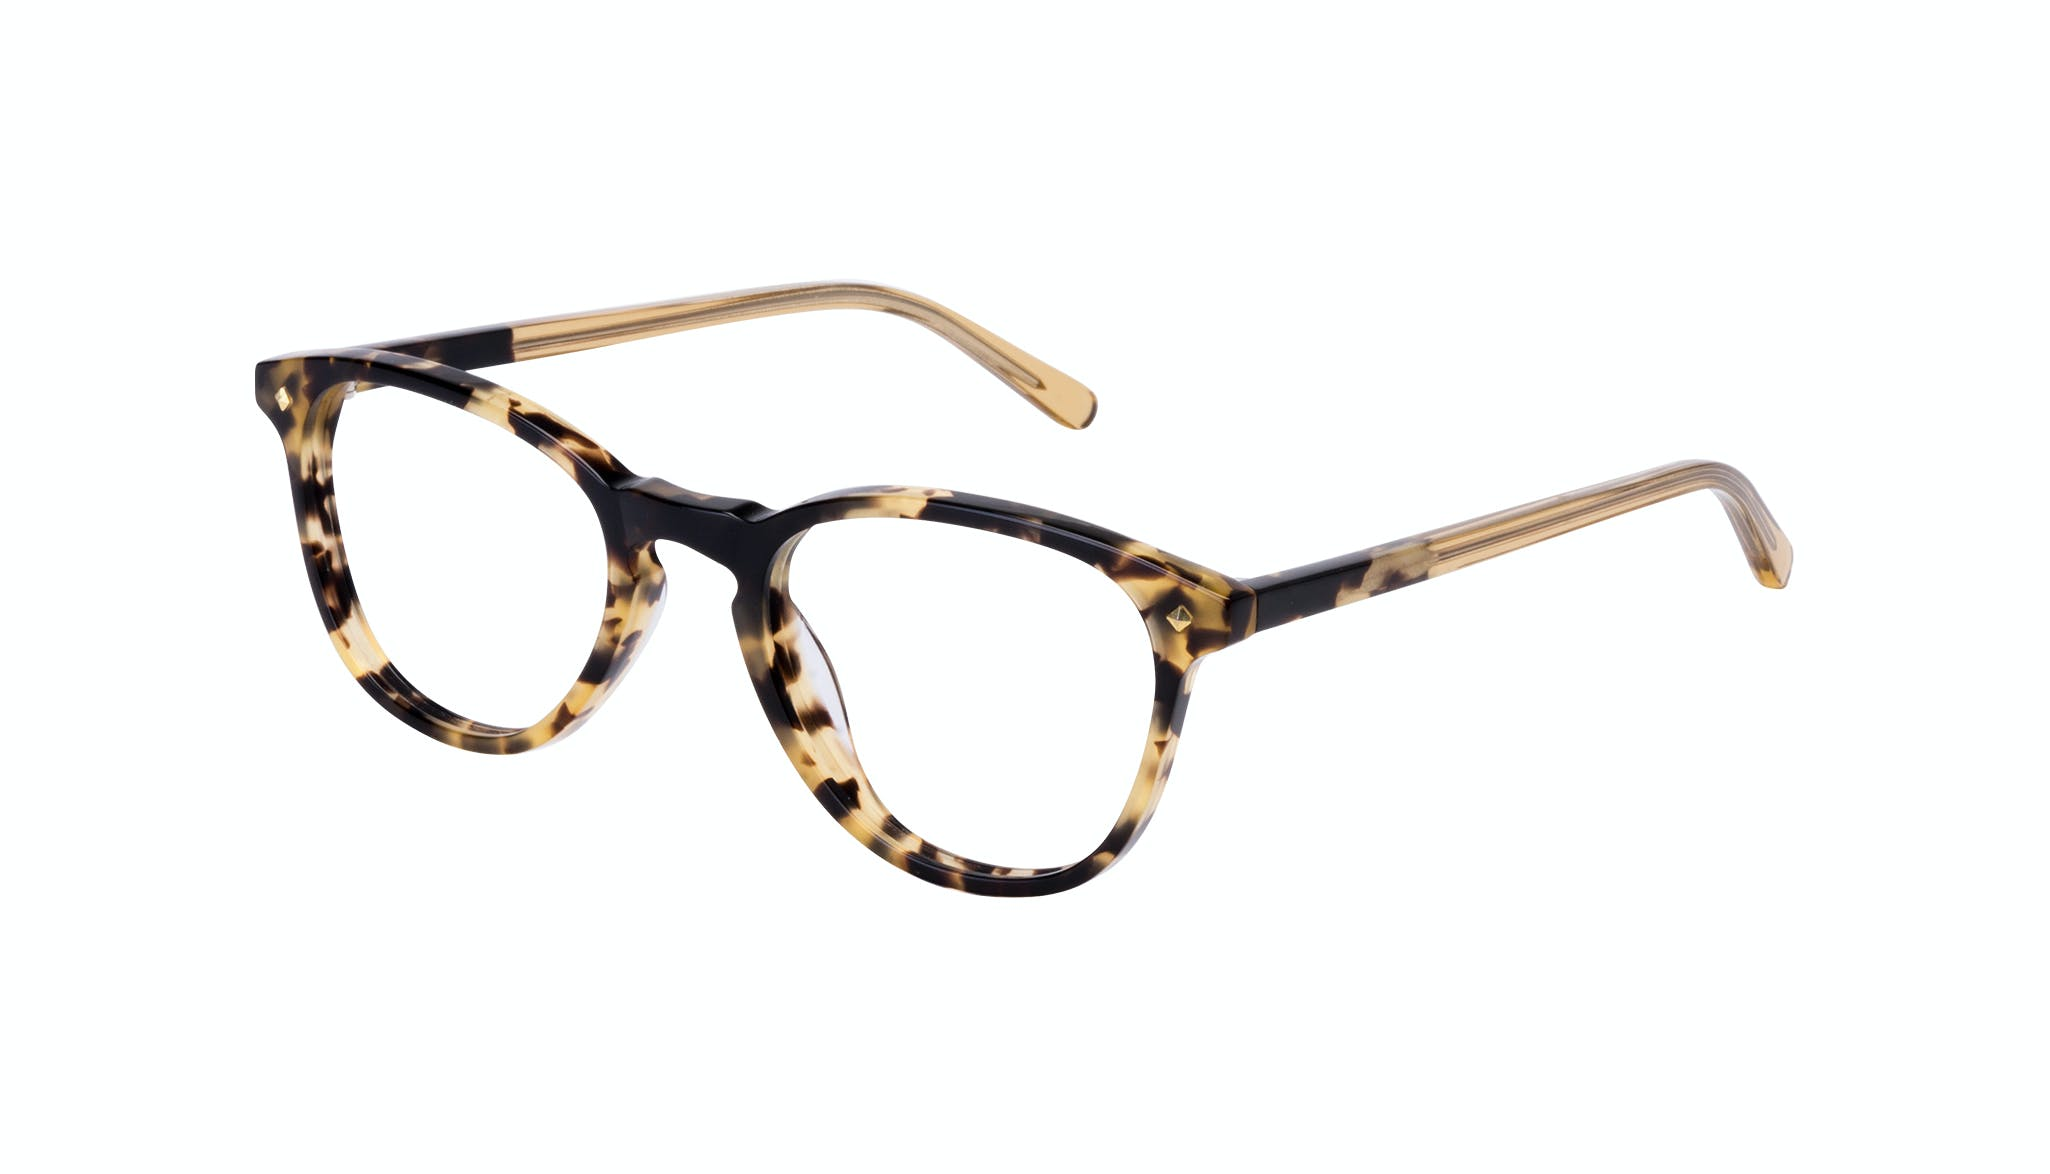 Affordable Fashion Glasses Round Eyeglasses Women Crush Bingal Tilt